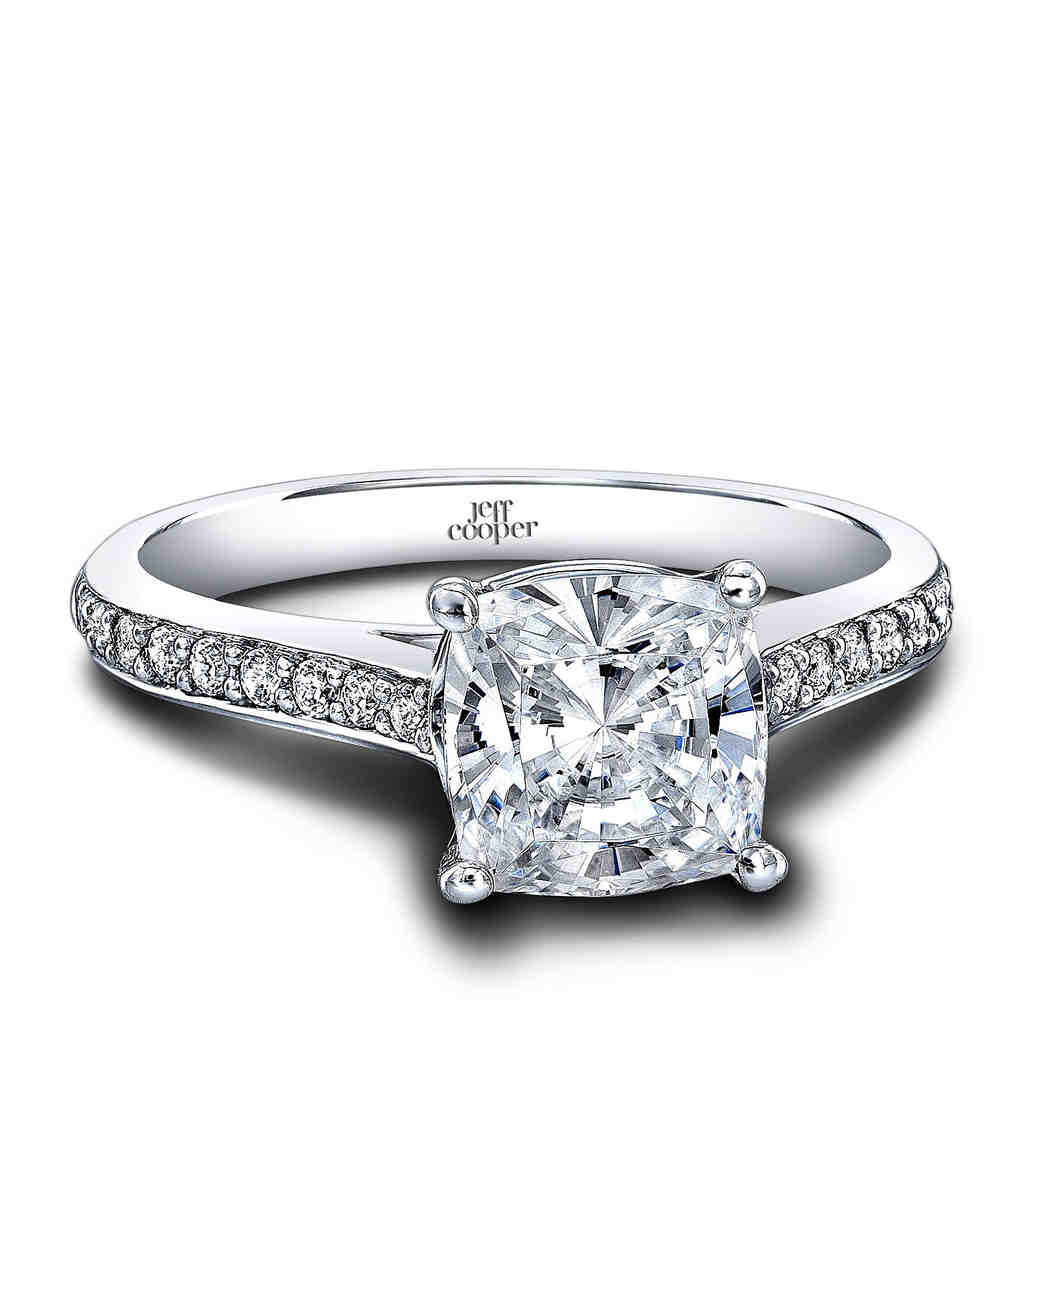 "Jeff Cooper Designs ""Caitlyn"" Cushion-Cut Diamond Engagement Ring"